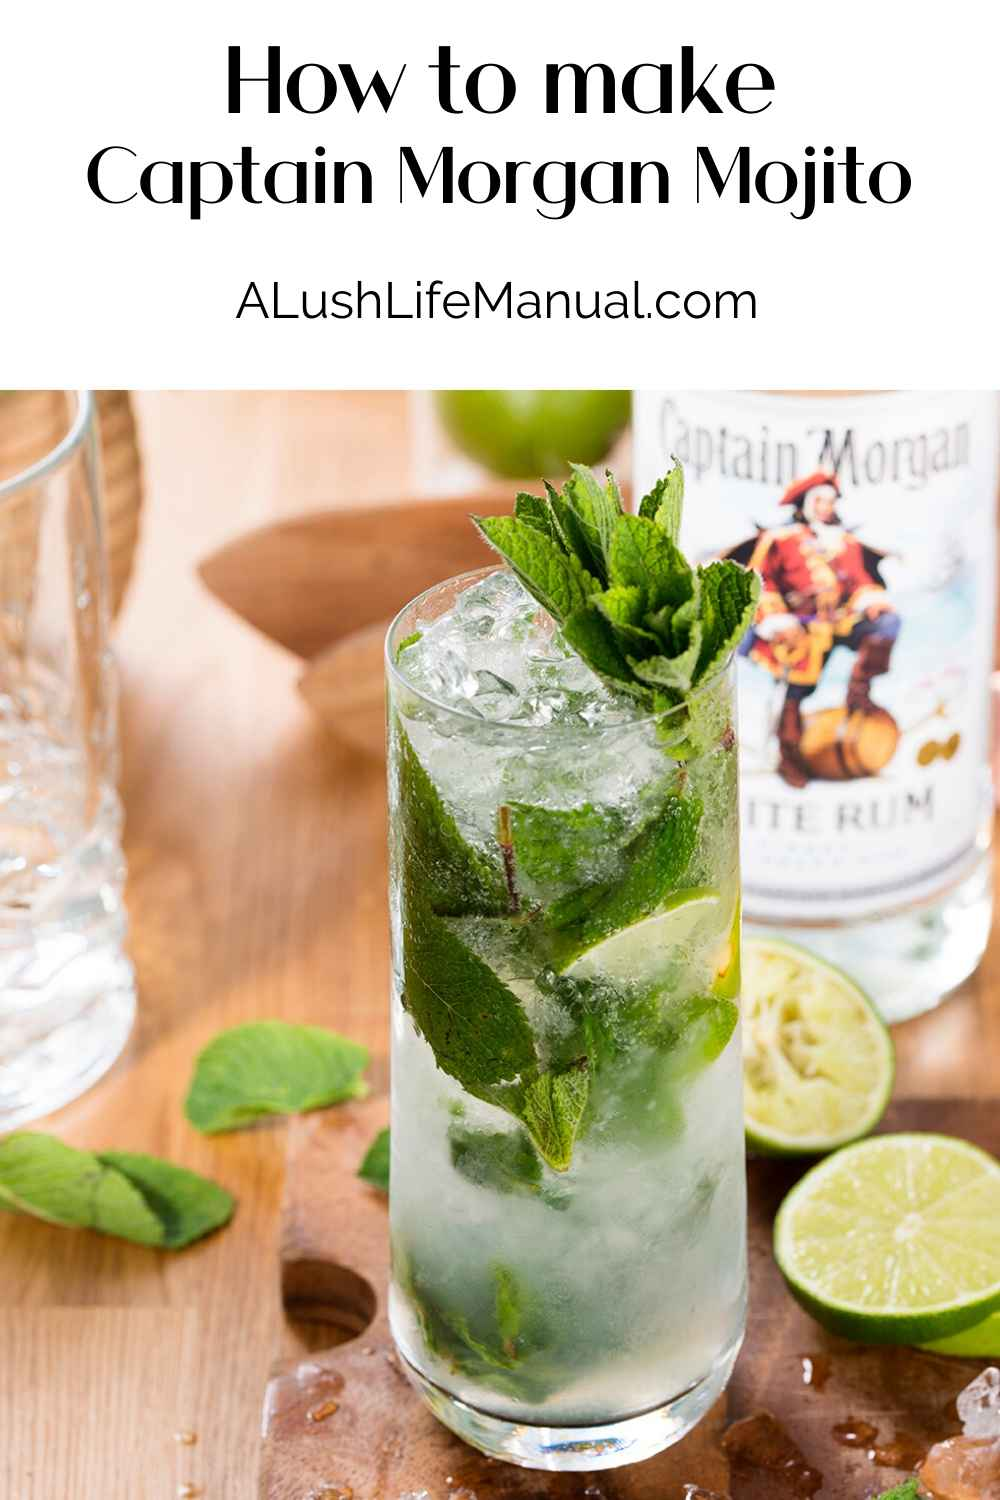 Summer Is Coming A Mojito Is The Perfect Drink For Lounging In The Sun This Easy Cocktail Recipe Is Cocktail Recipes Easy Easy Mojito Recipe Rum Drinks Easy